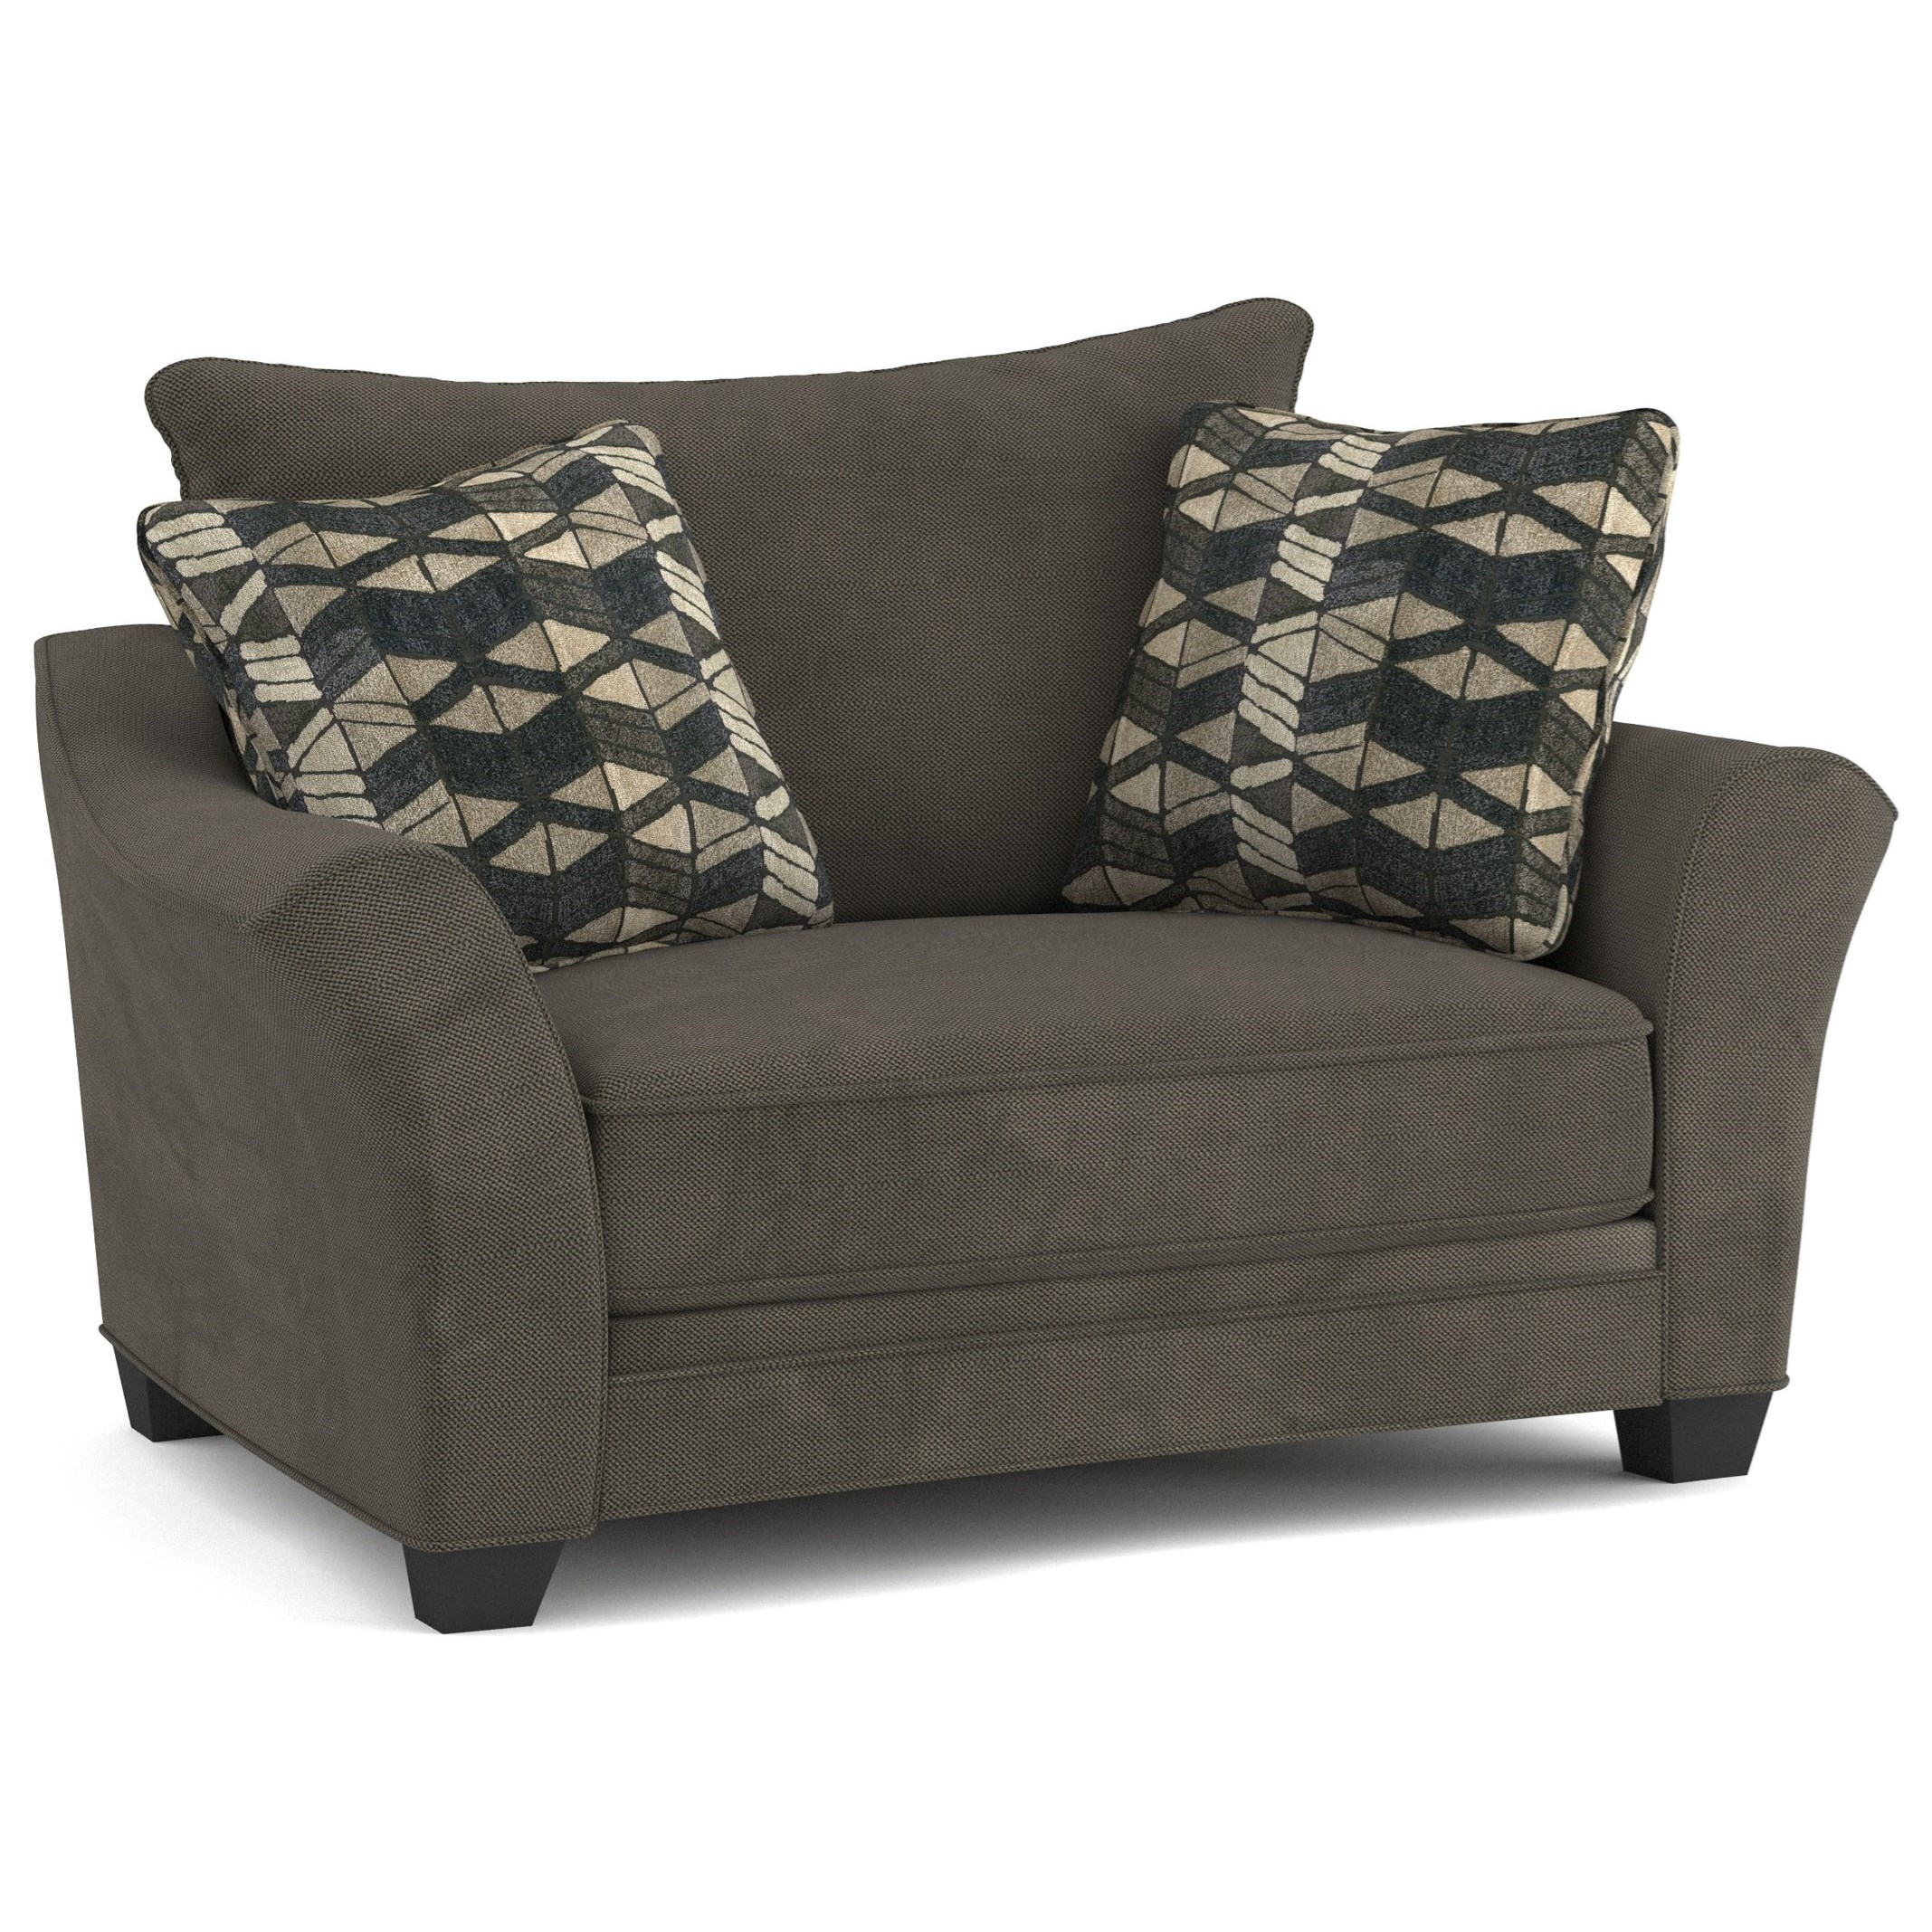 Denali Double Chair by Sunset Home at Walker's Furniture